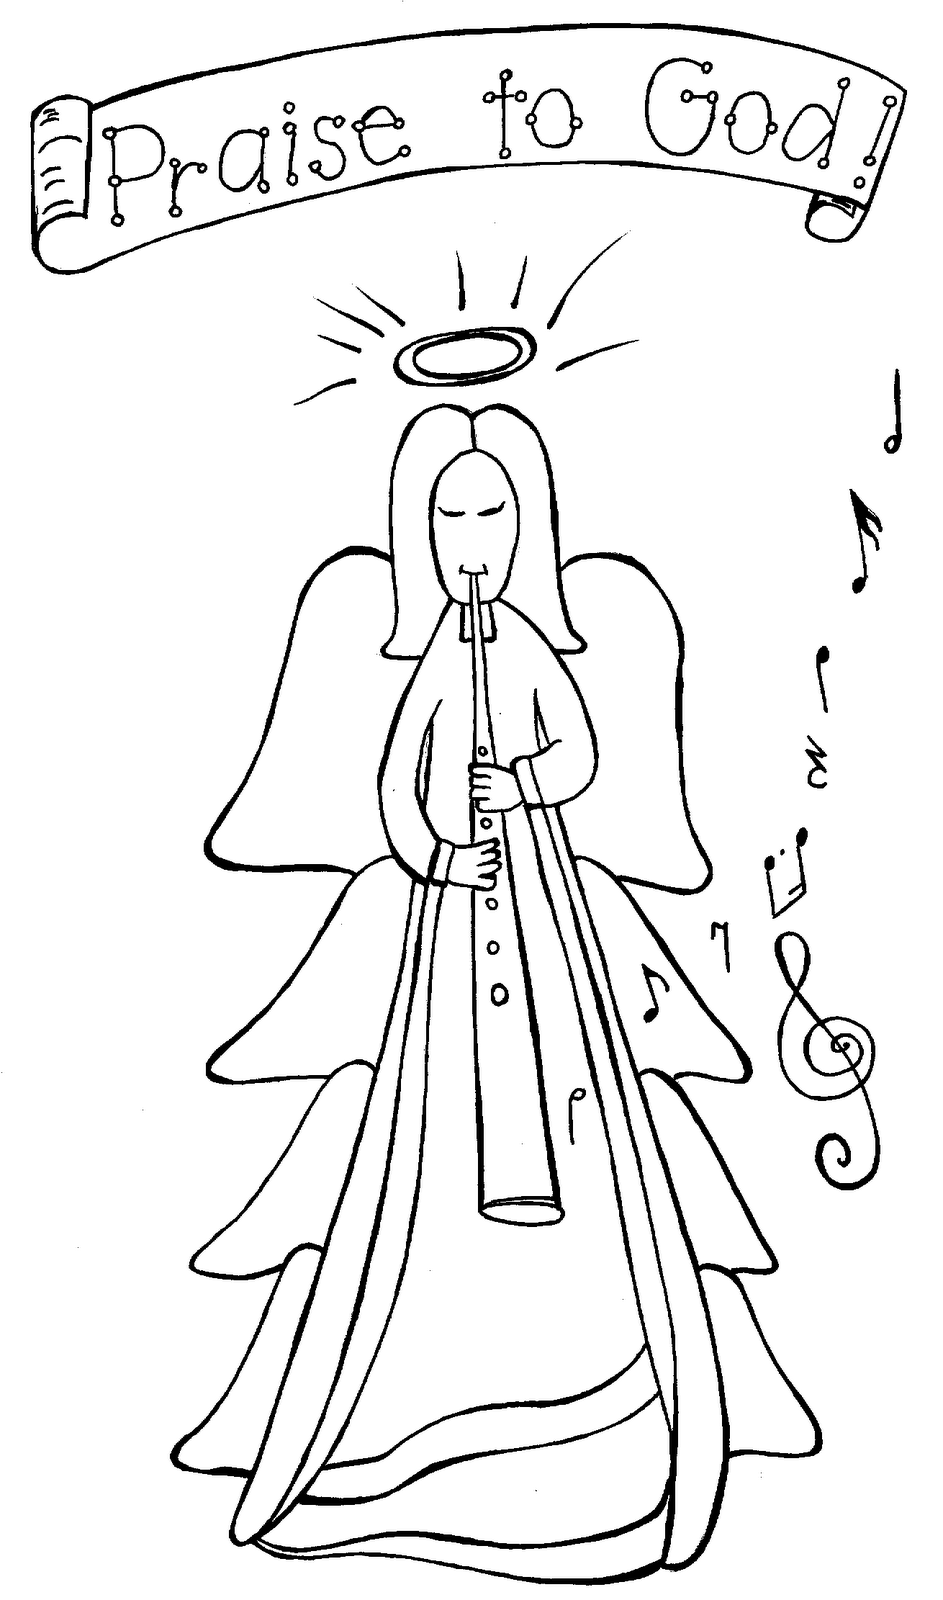 colouring pictures of angels free printable angel coloring pages for kids colouring pictures angels of